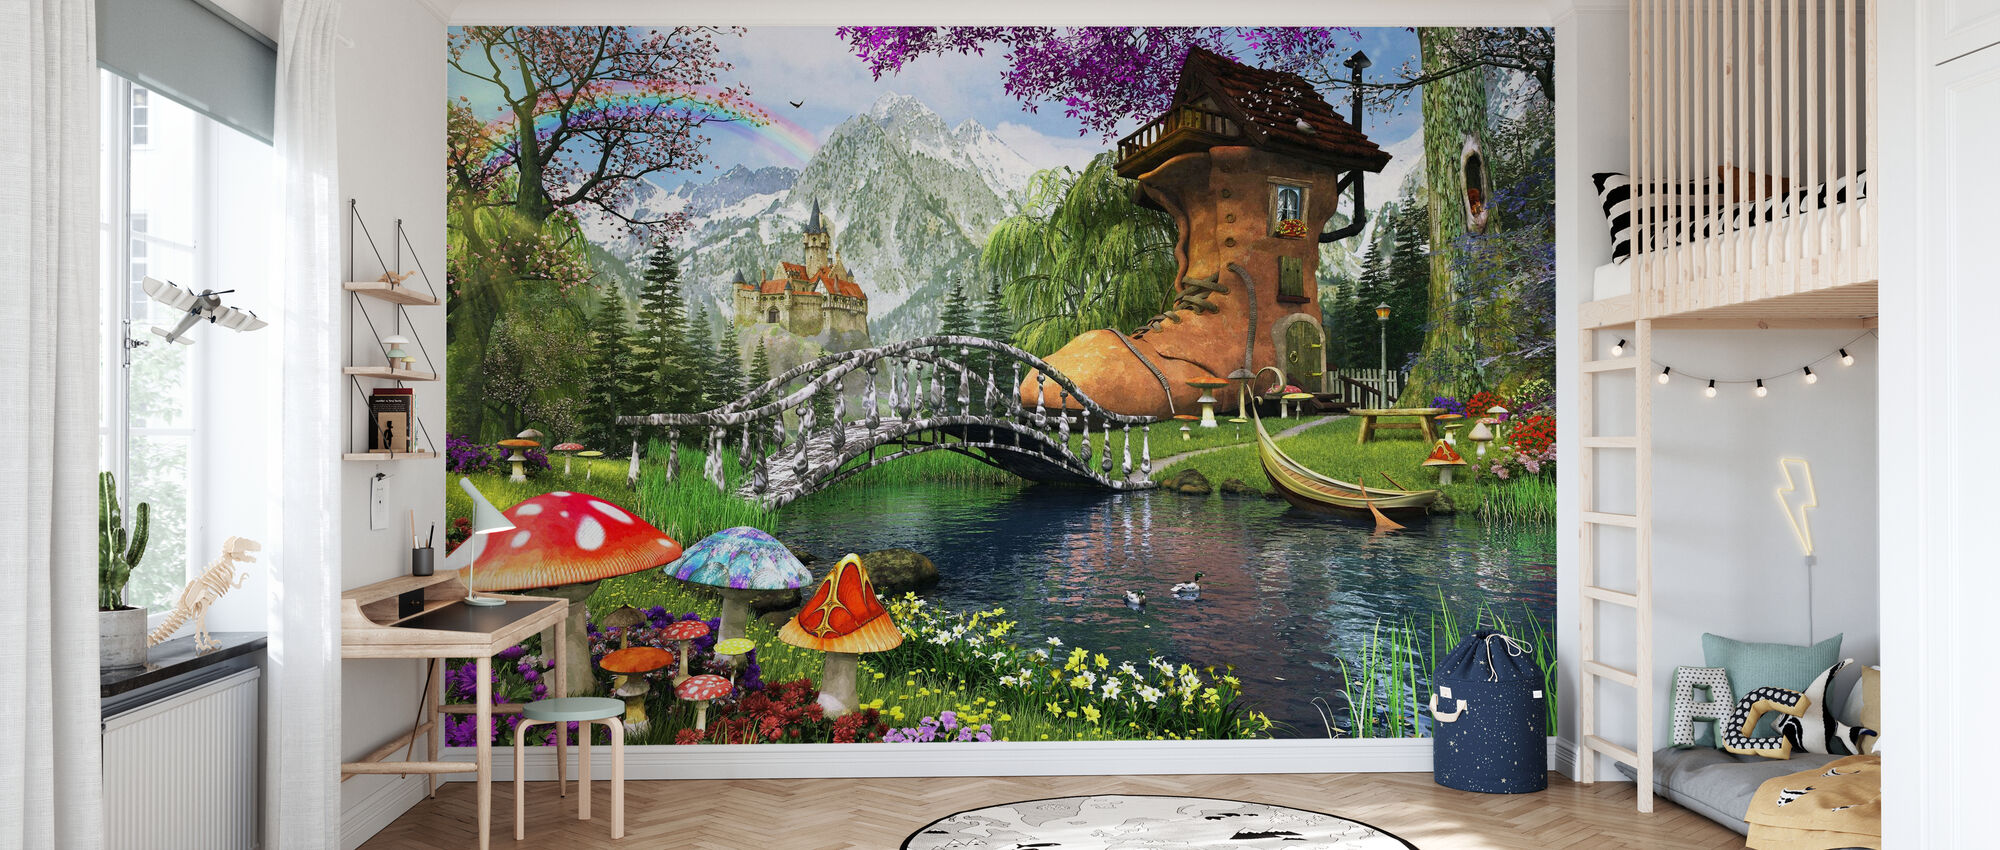 The Old Shoe House - Wallpaper - Kids Room